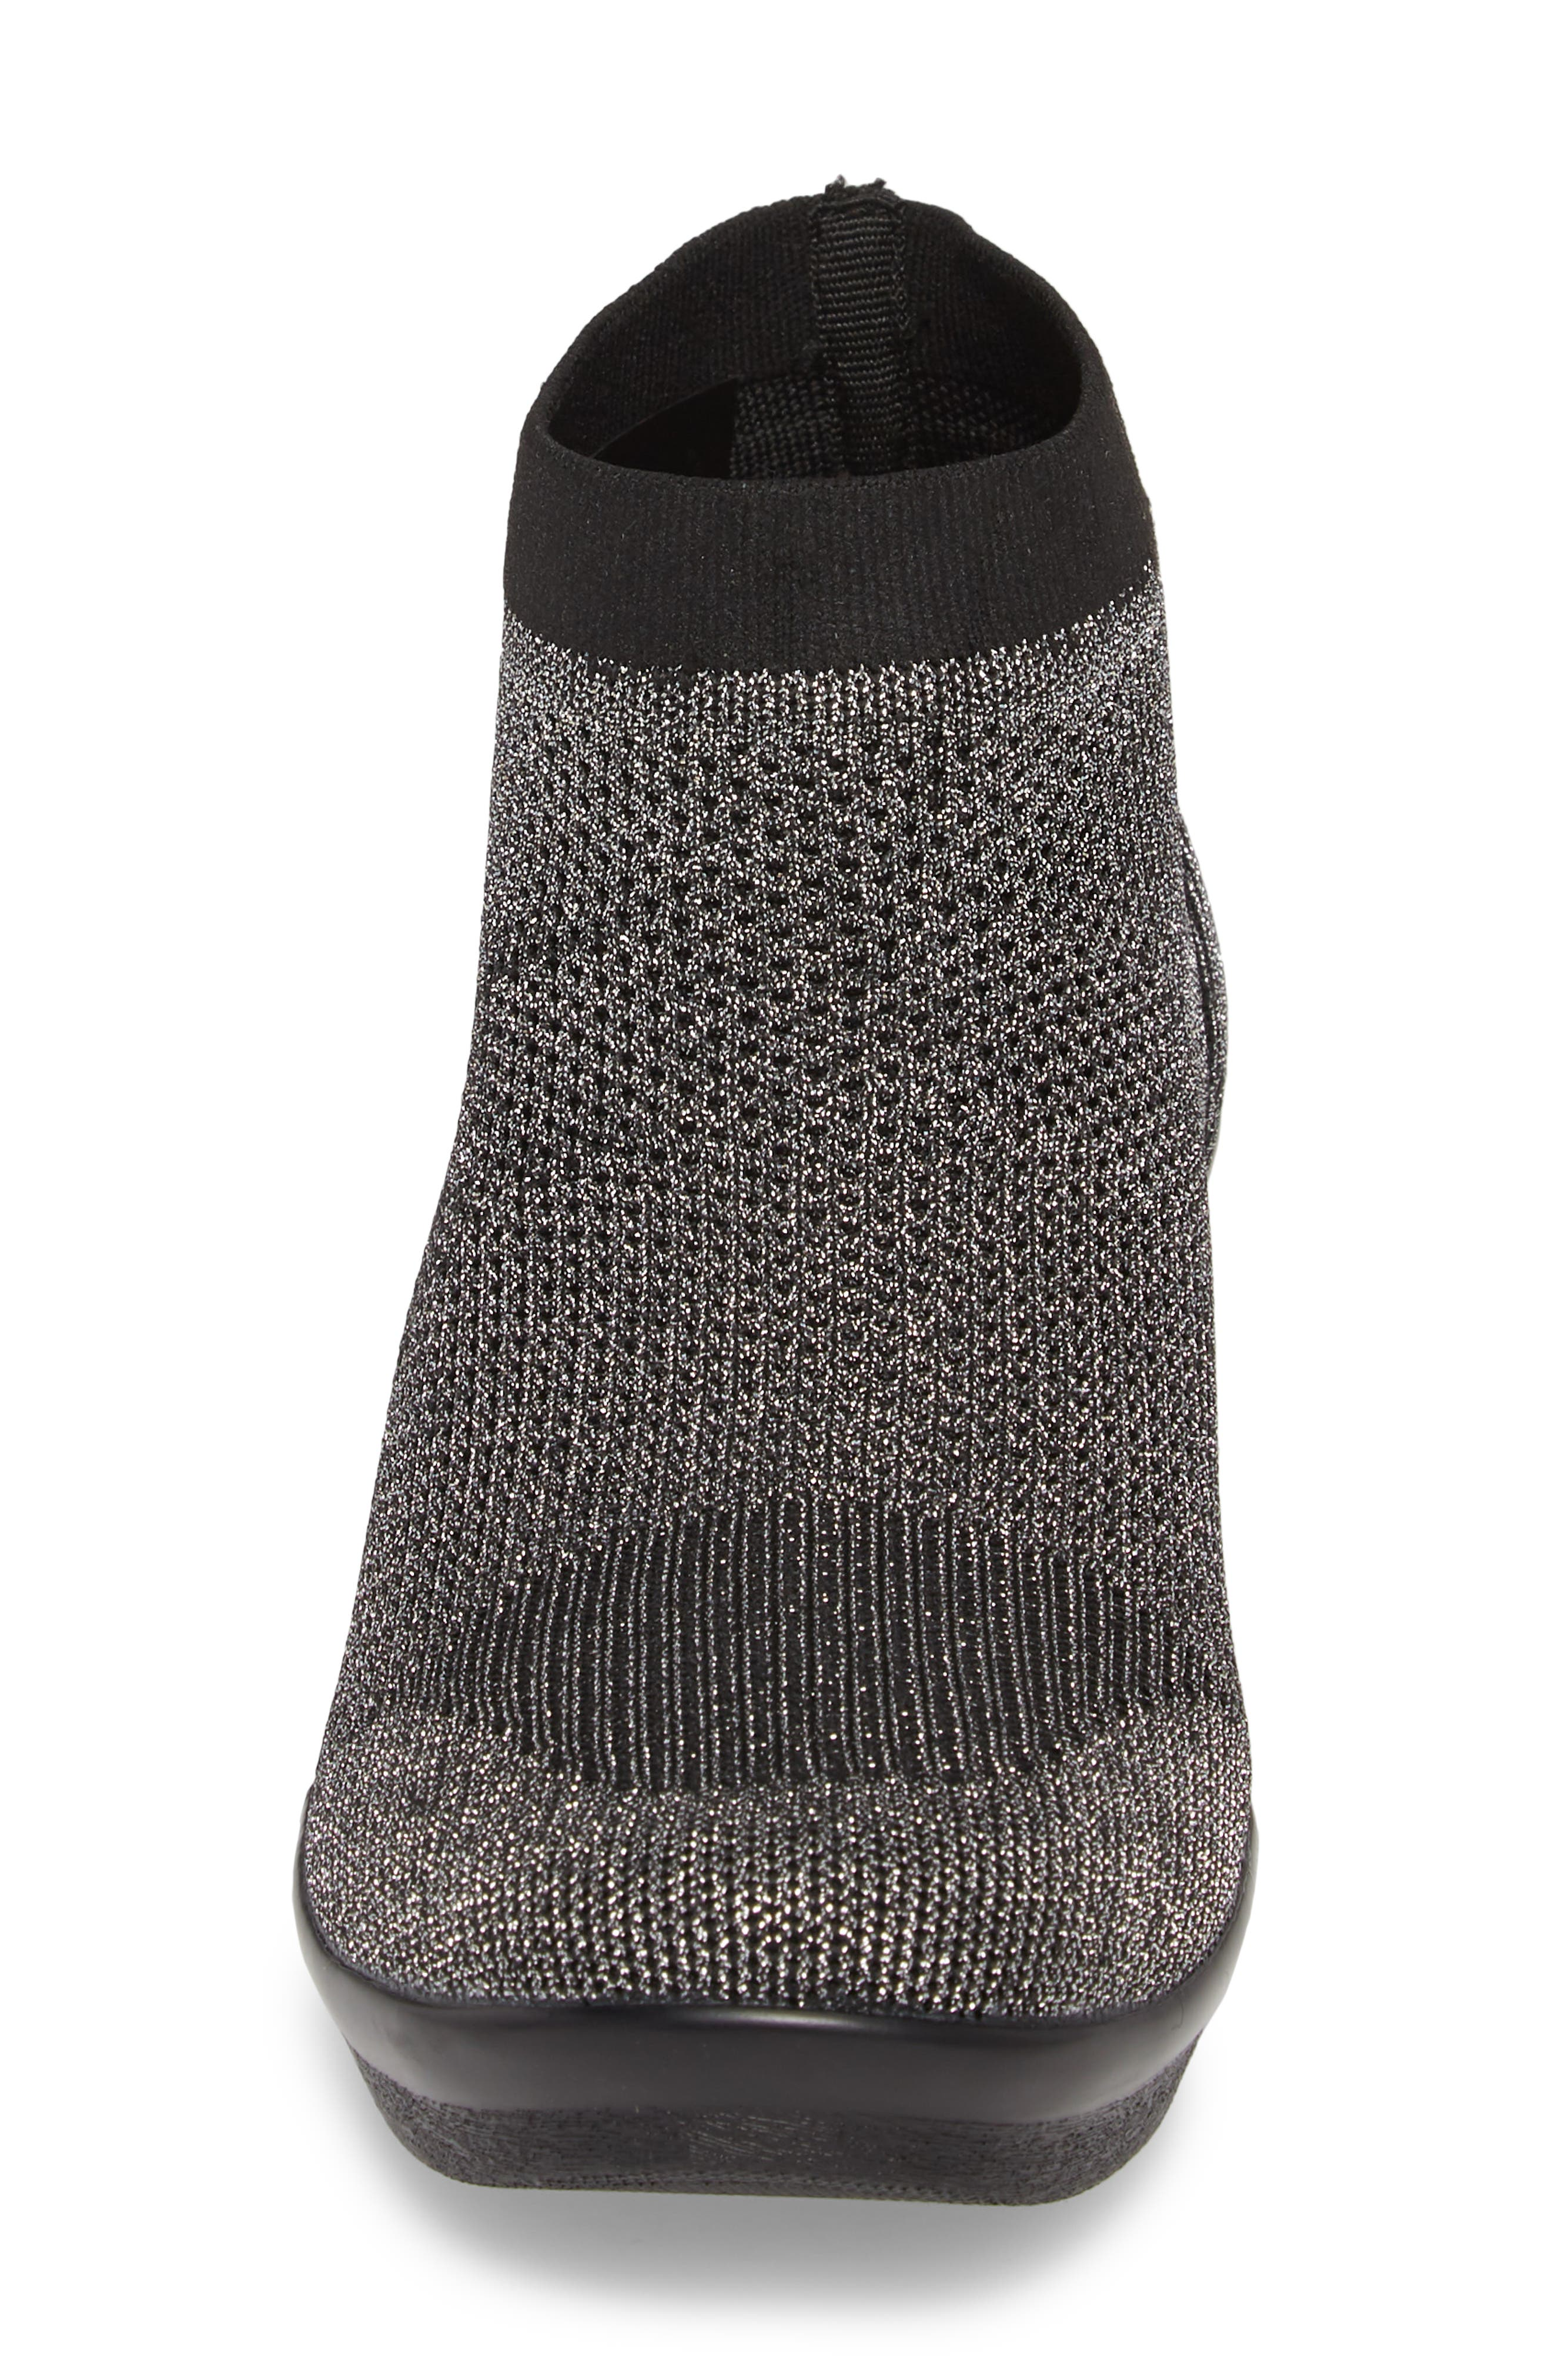 Camryn Knit Bootie,                             Alternate thumbnail 4, color,                             GUNMETAL FABRIC